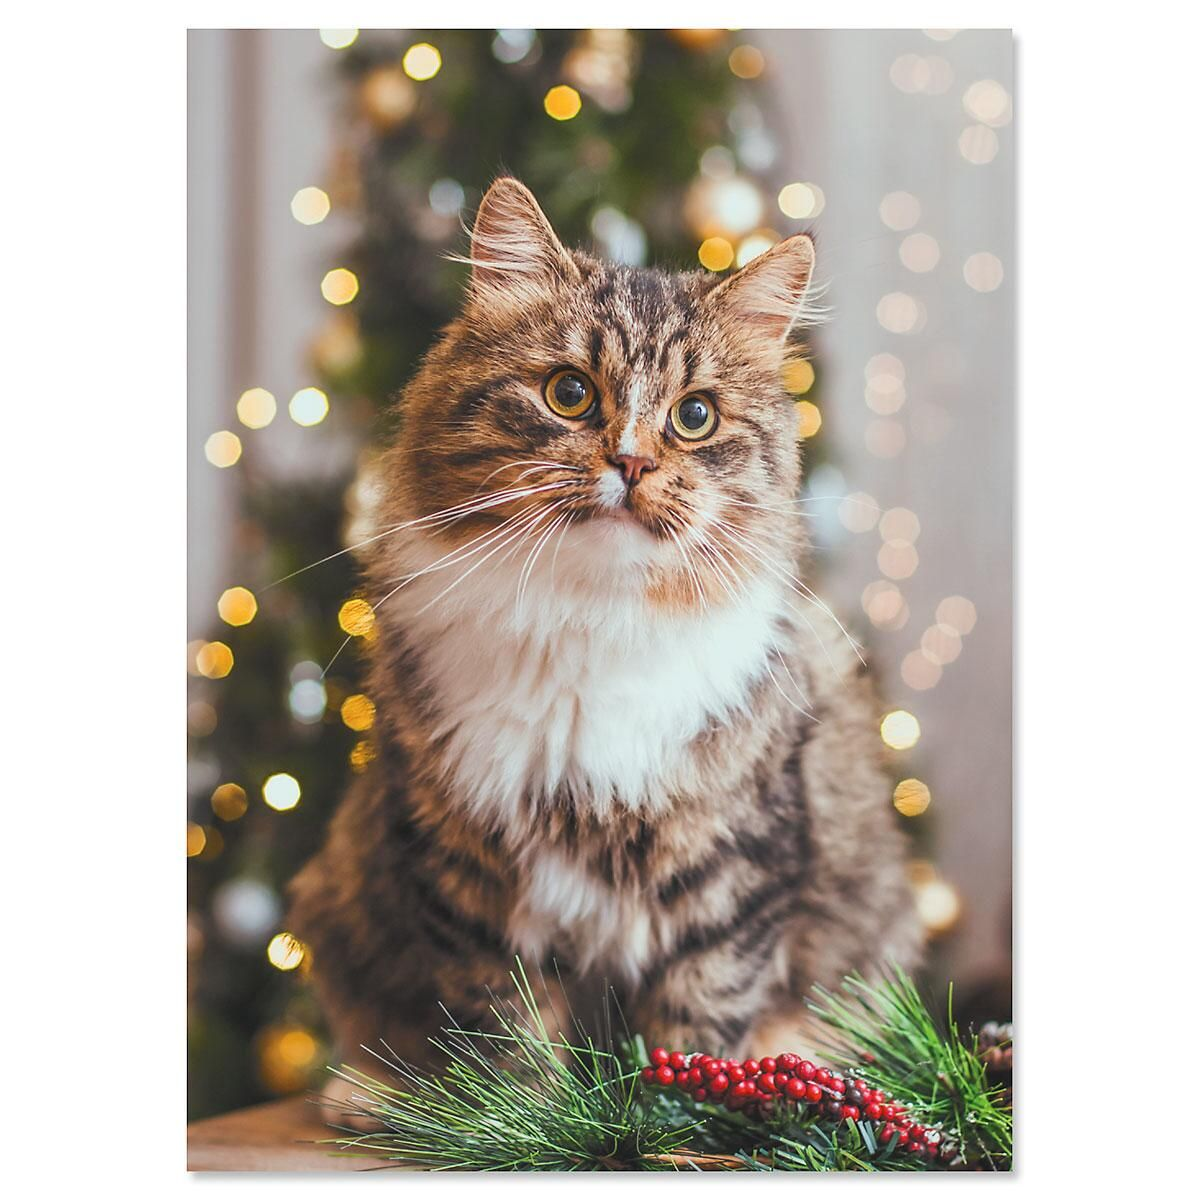 Christmas Cat Nonpersonalized Christmas Cards - Set of 18